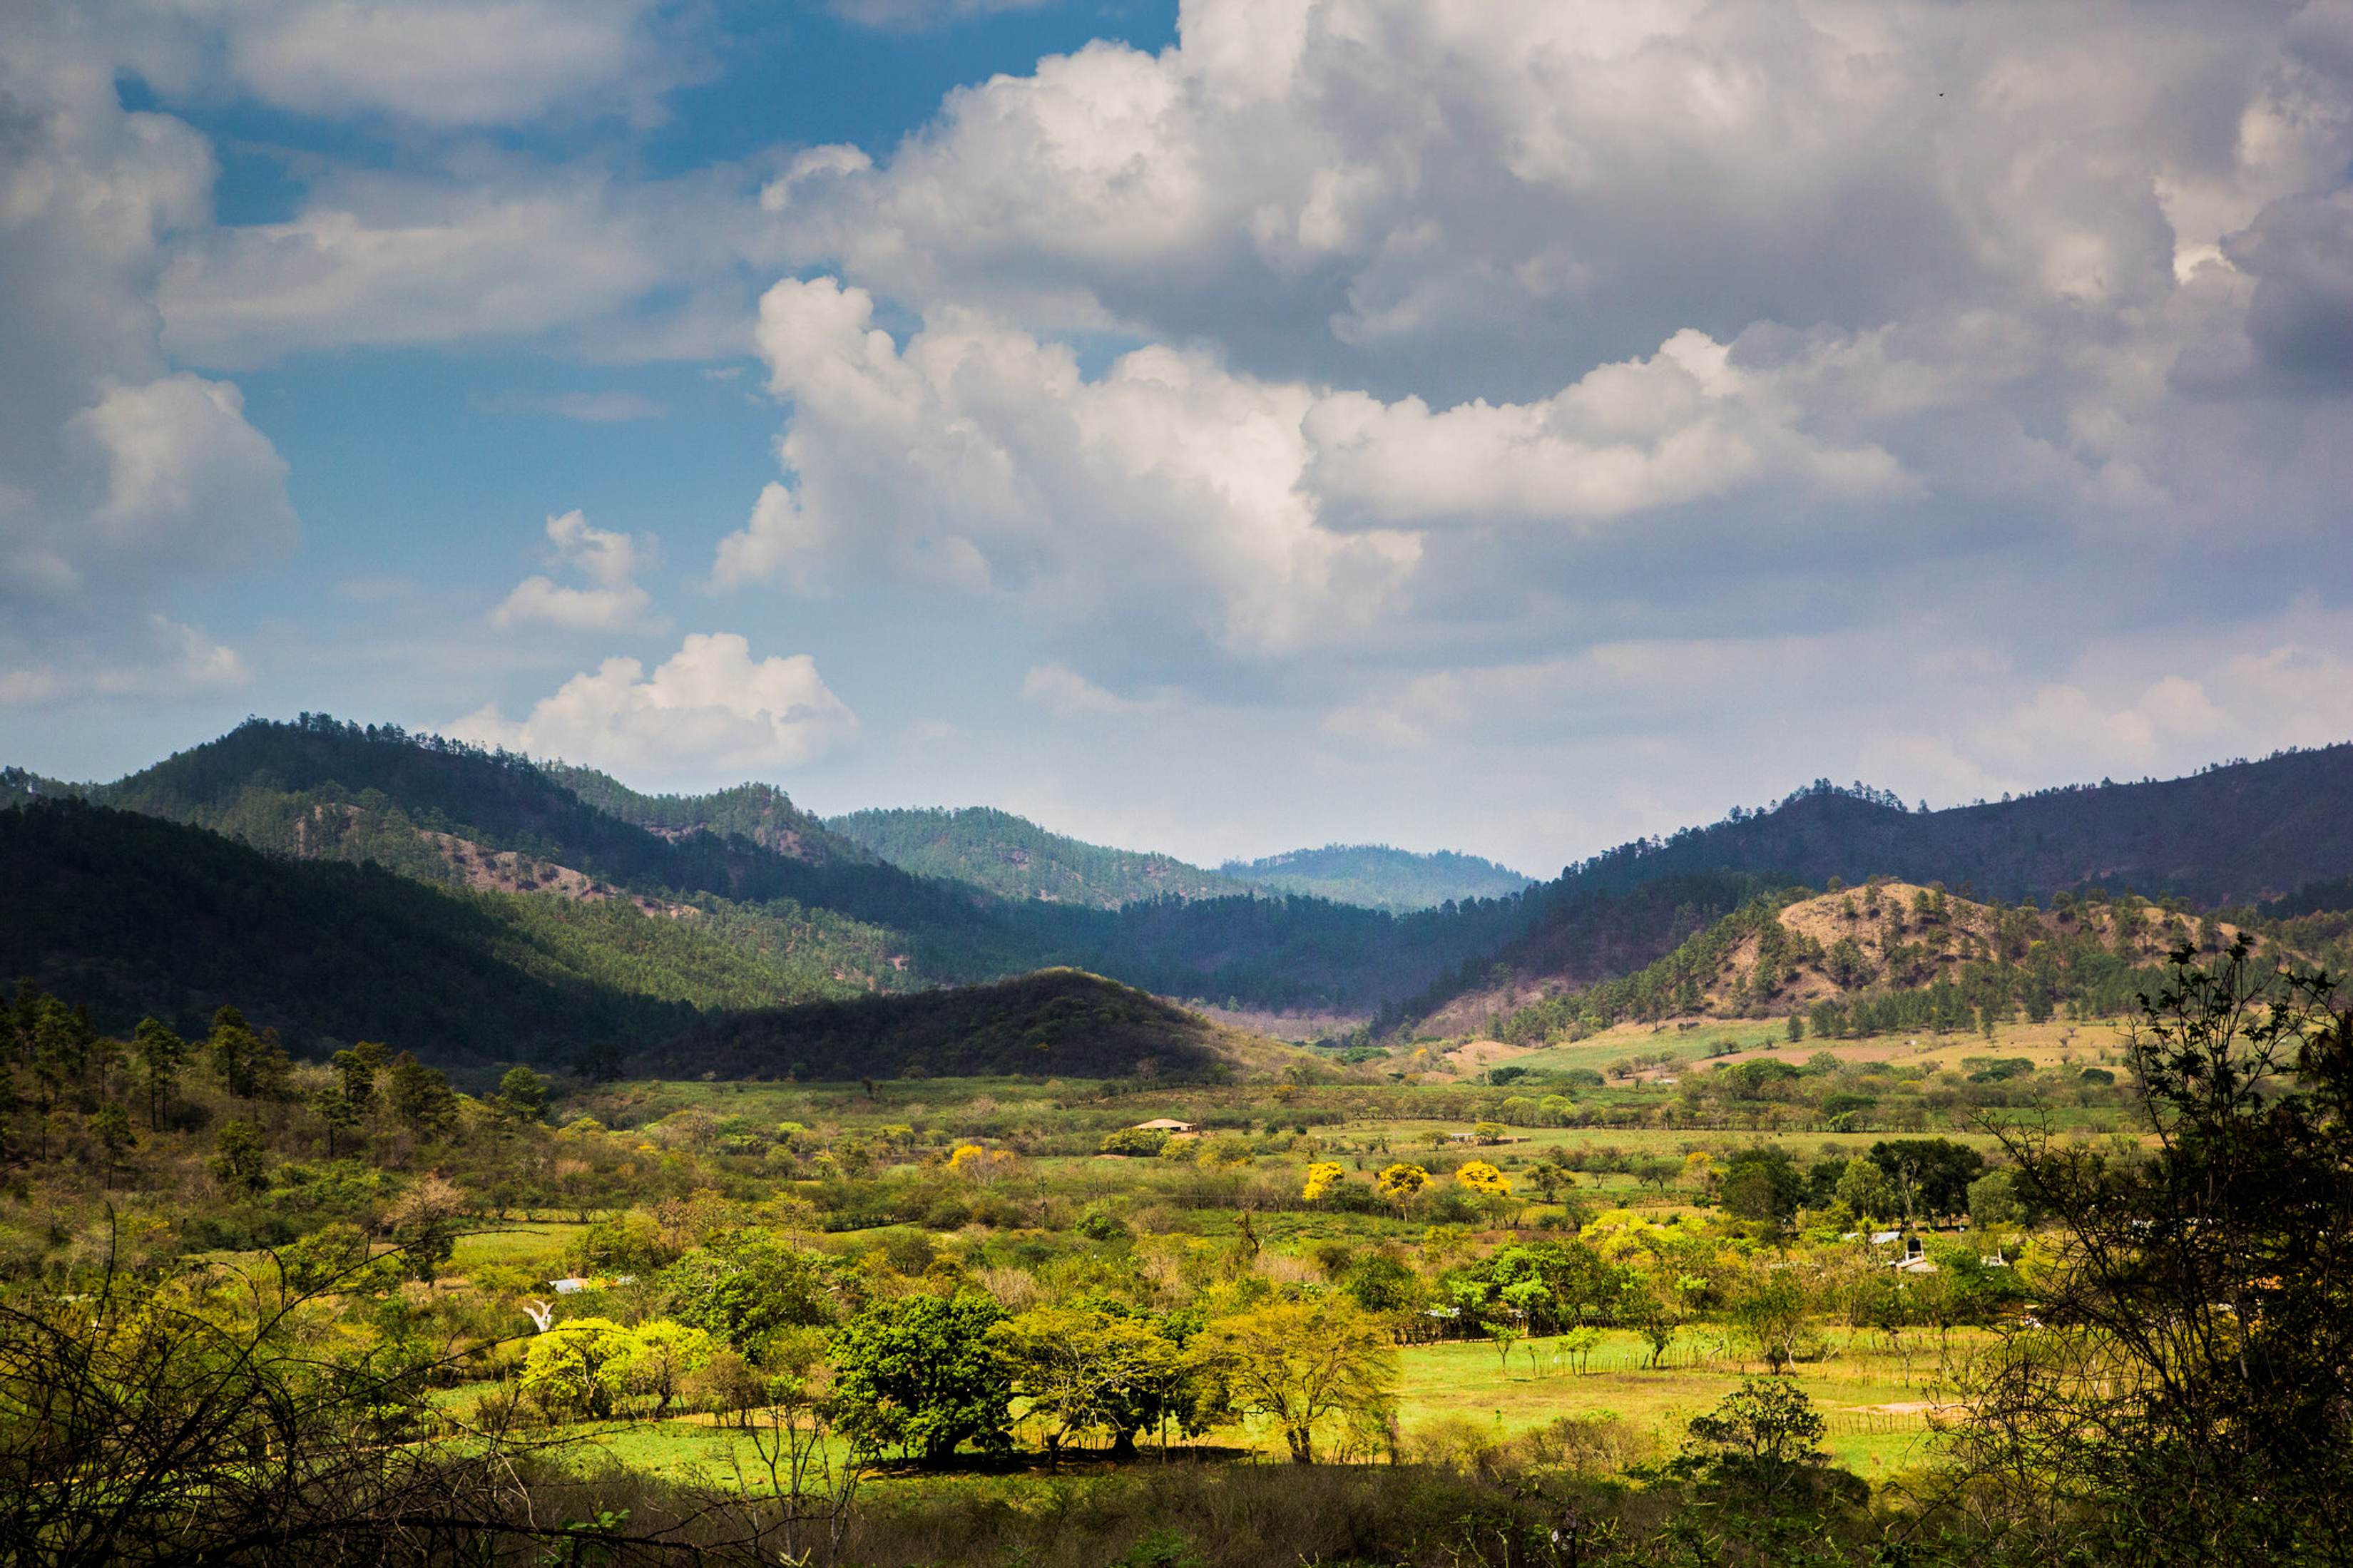 A Honduran landscape stretches out in front of the camera. Clouds cast shadows on rolling, forested hills and pastures broken up by clumps of trees.